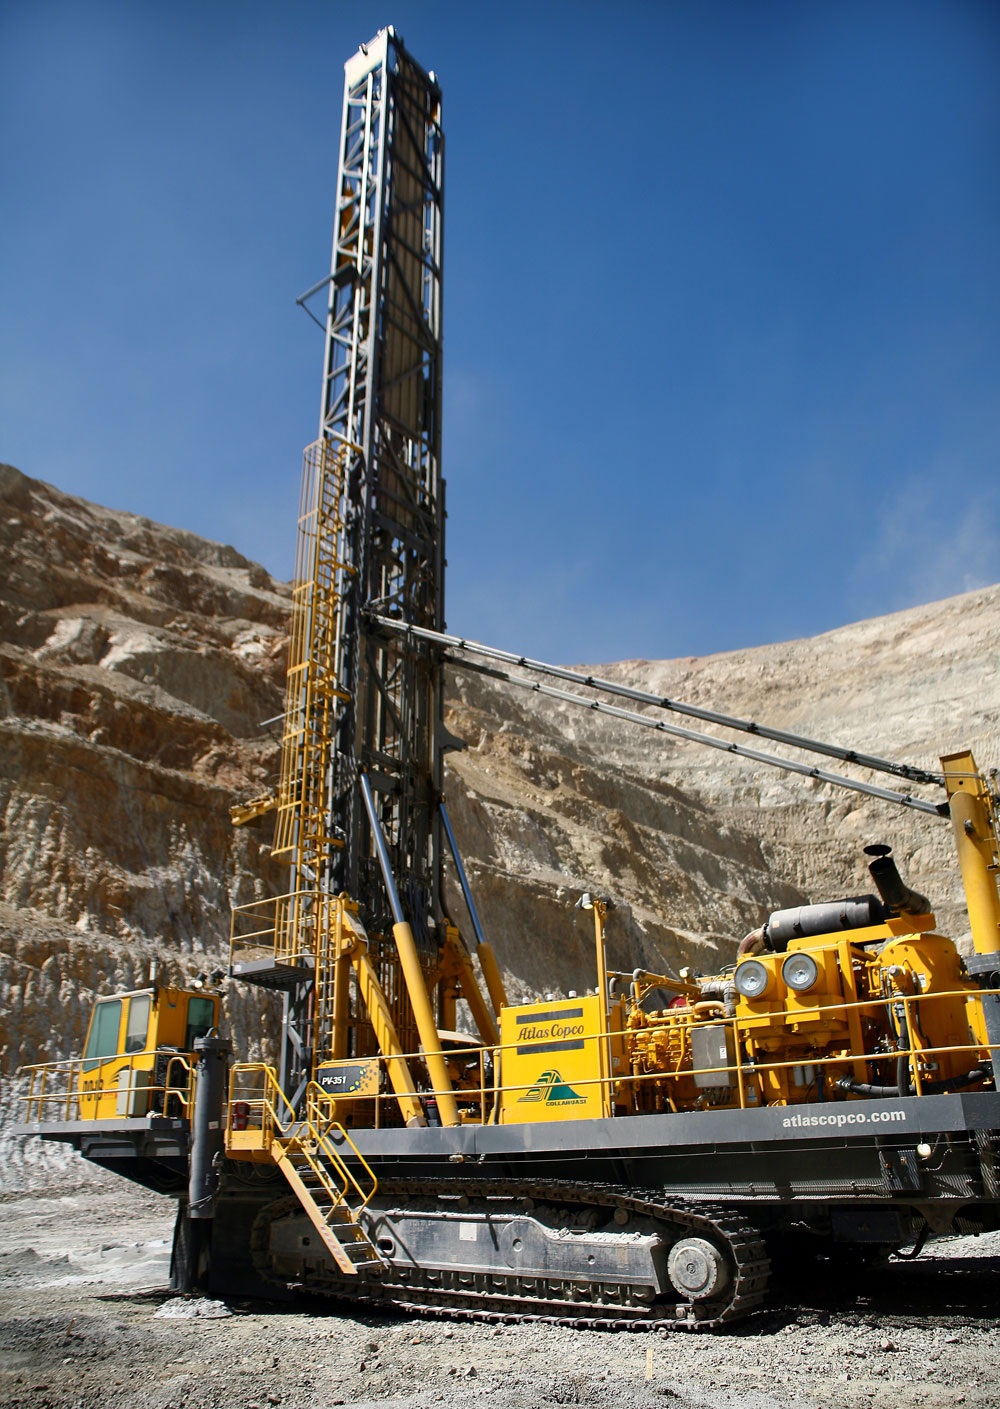 best rc site with Atlas Copco Pit Viper Drill Rigs The Kings Of Collahuasi 1360 on Nigaspuairfo moreover Index besides Power Coping Saw likewise Is She Still Married Leaving Young And Restless in addition 133911788891057075.